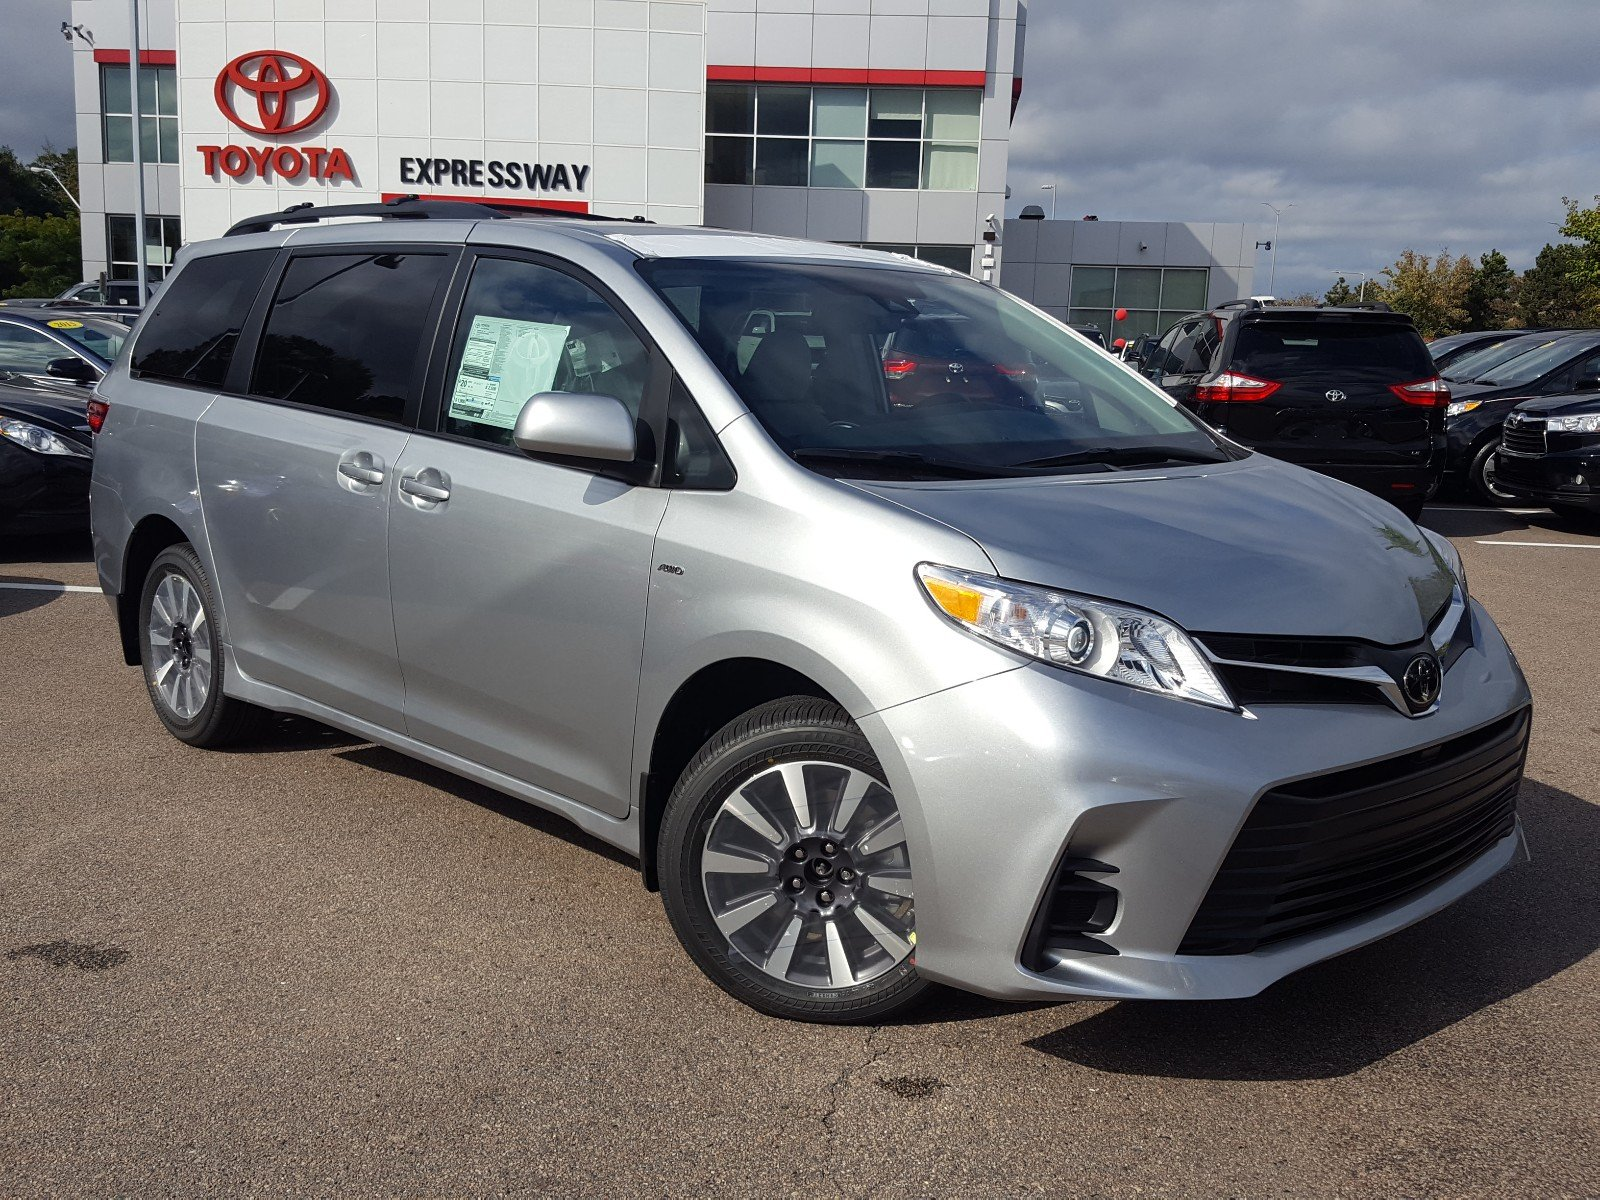 Toyota Sienna Service Manual: Driver Side Outer Mirror